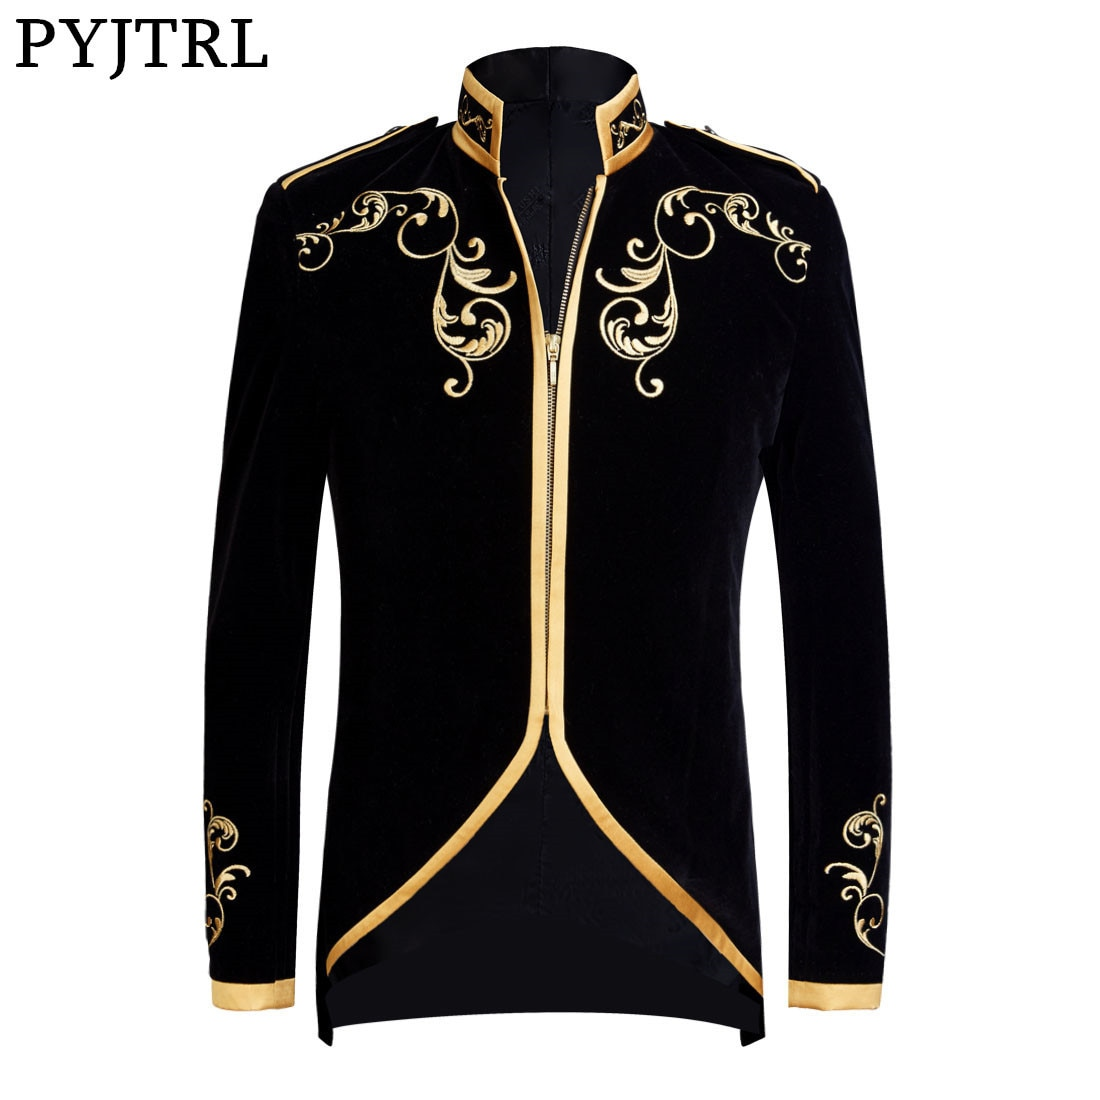 PYJTRL Velvet Embroidery Series Men British Style Palace Prince Velvet Gold Embroidery Blazer Wedding Groom Singers Suit Jacket